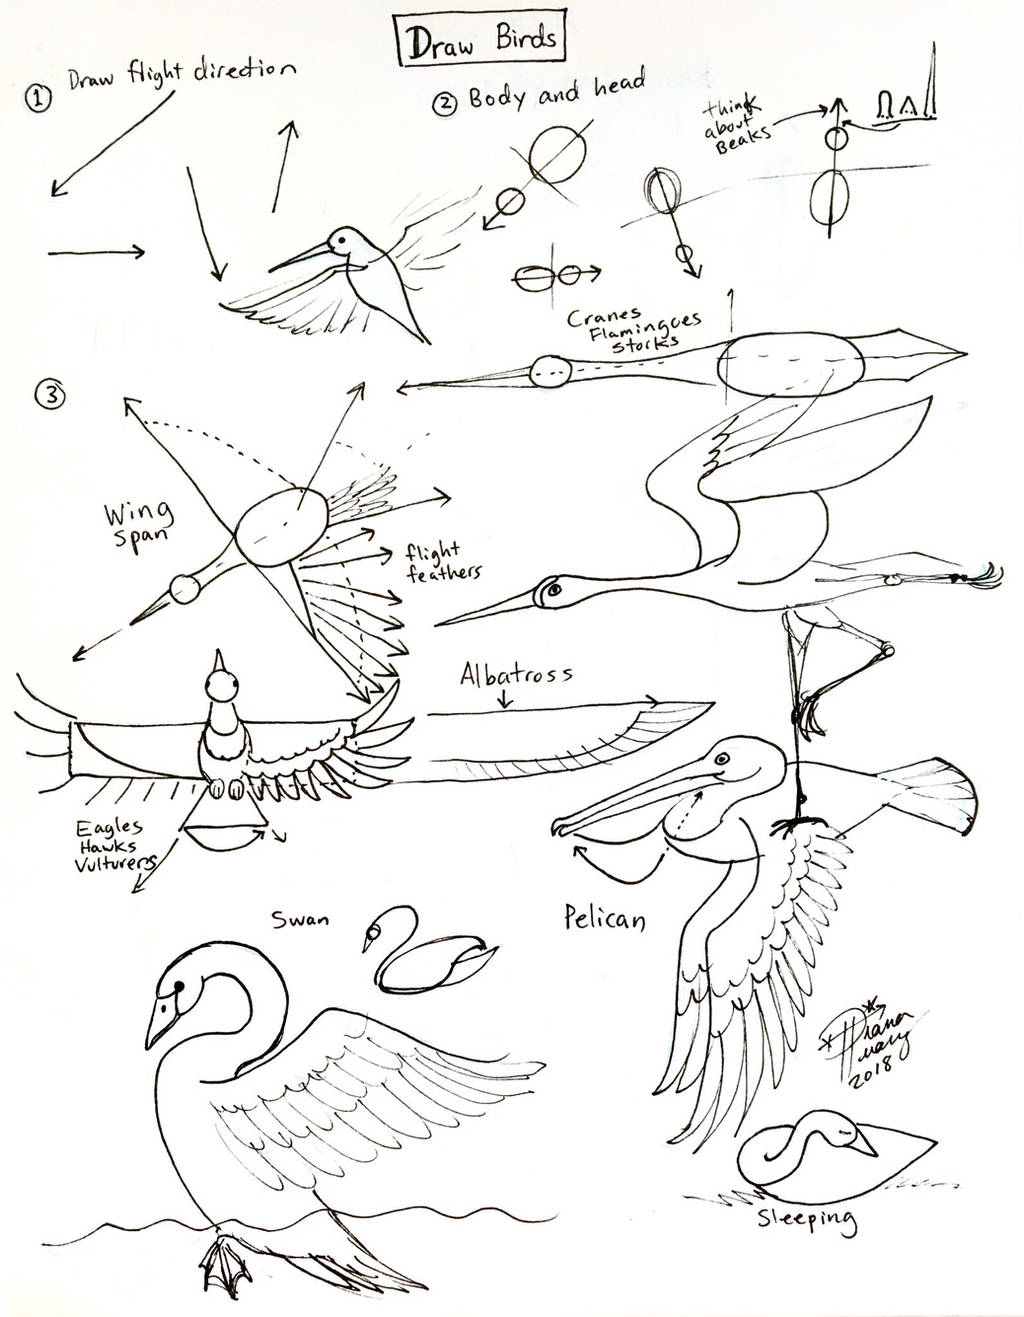 Draw Birds - Revised by Diana-Huang